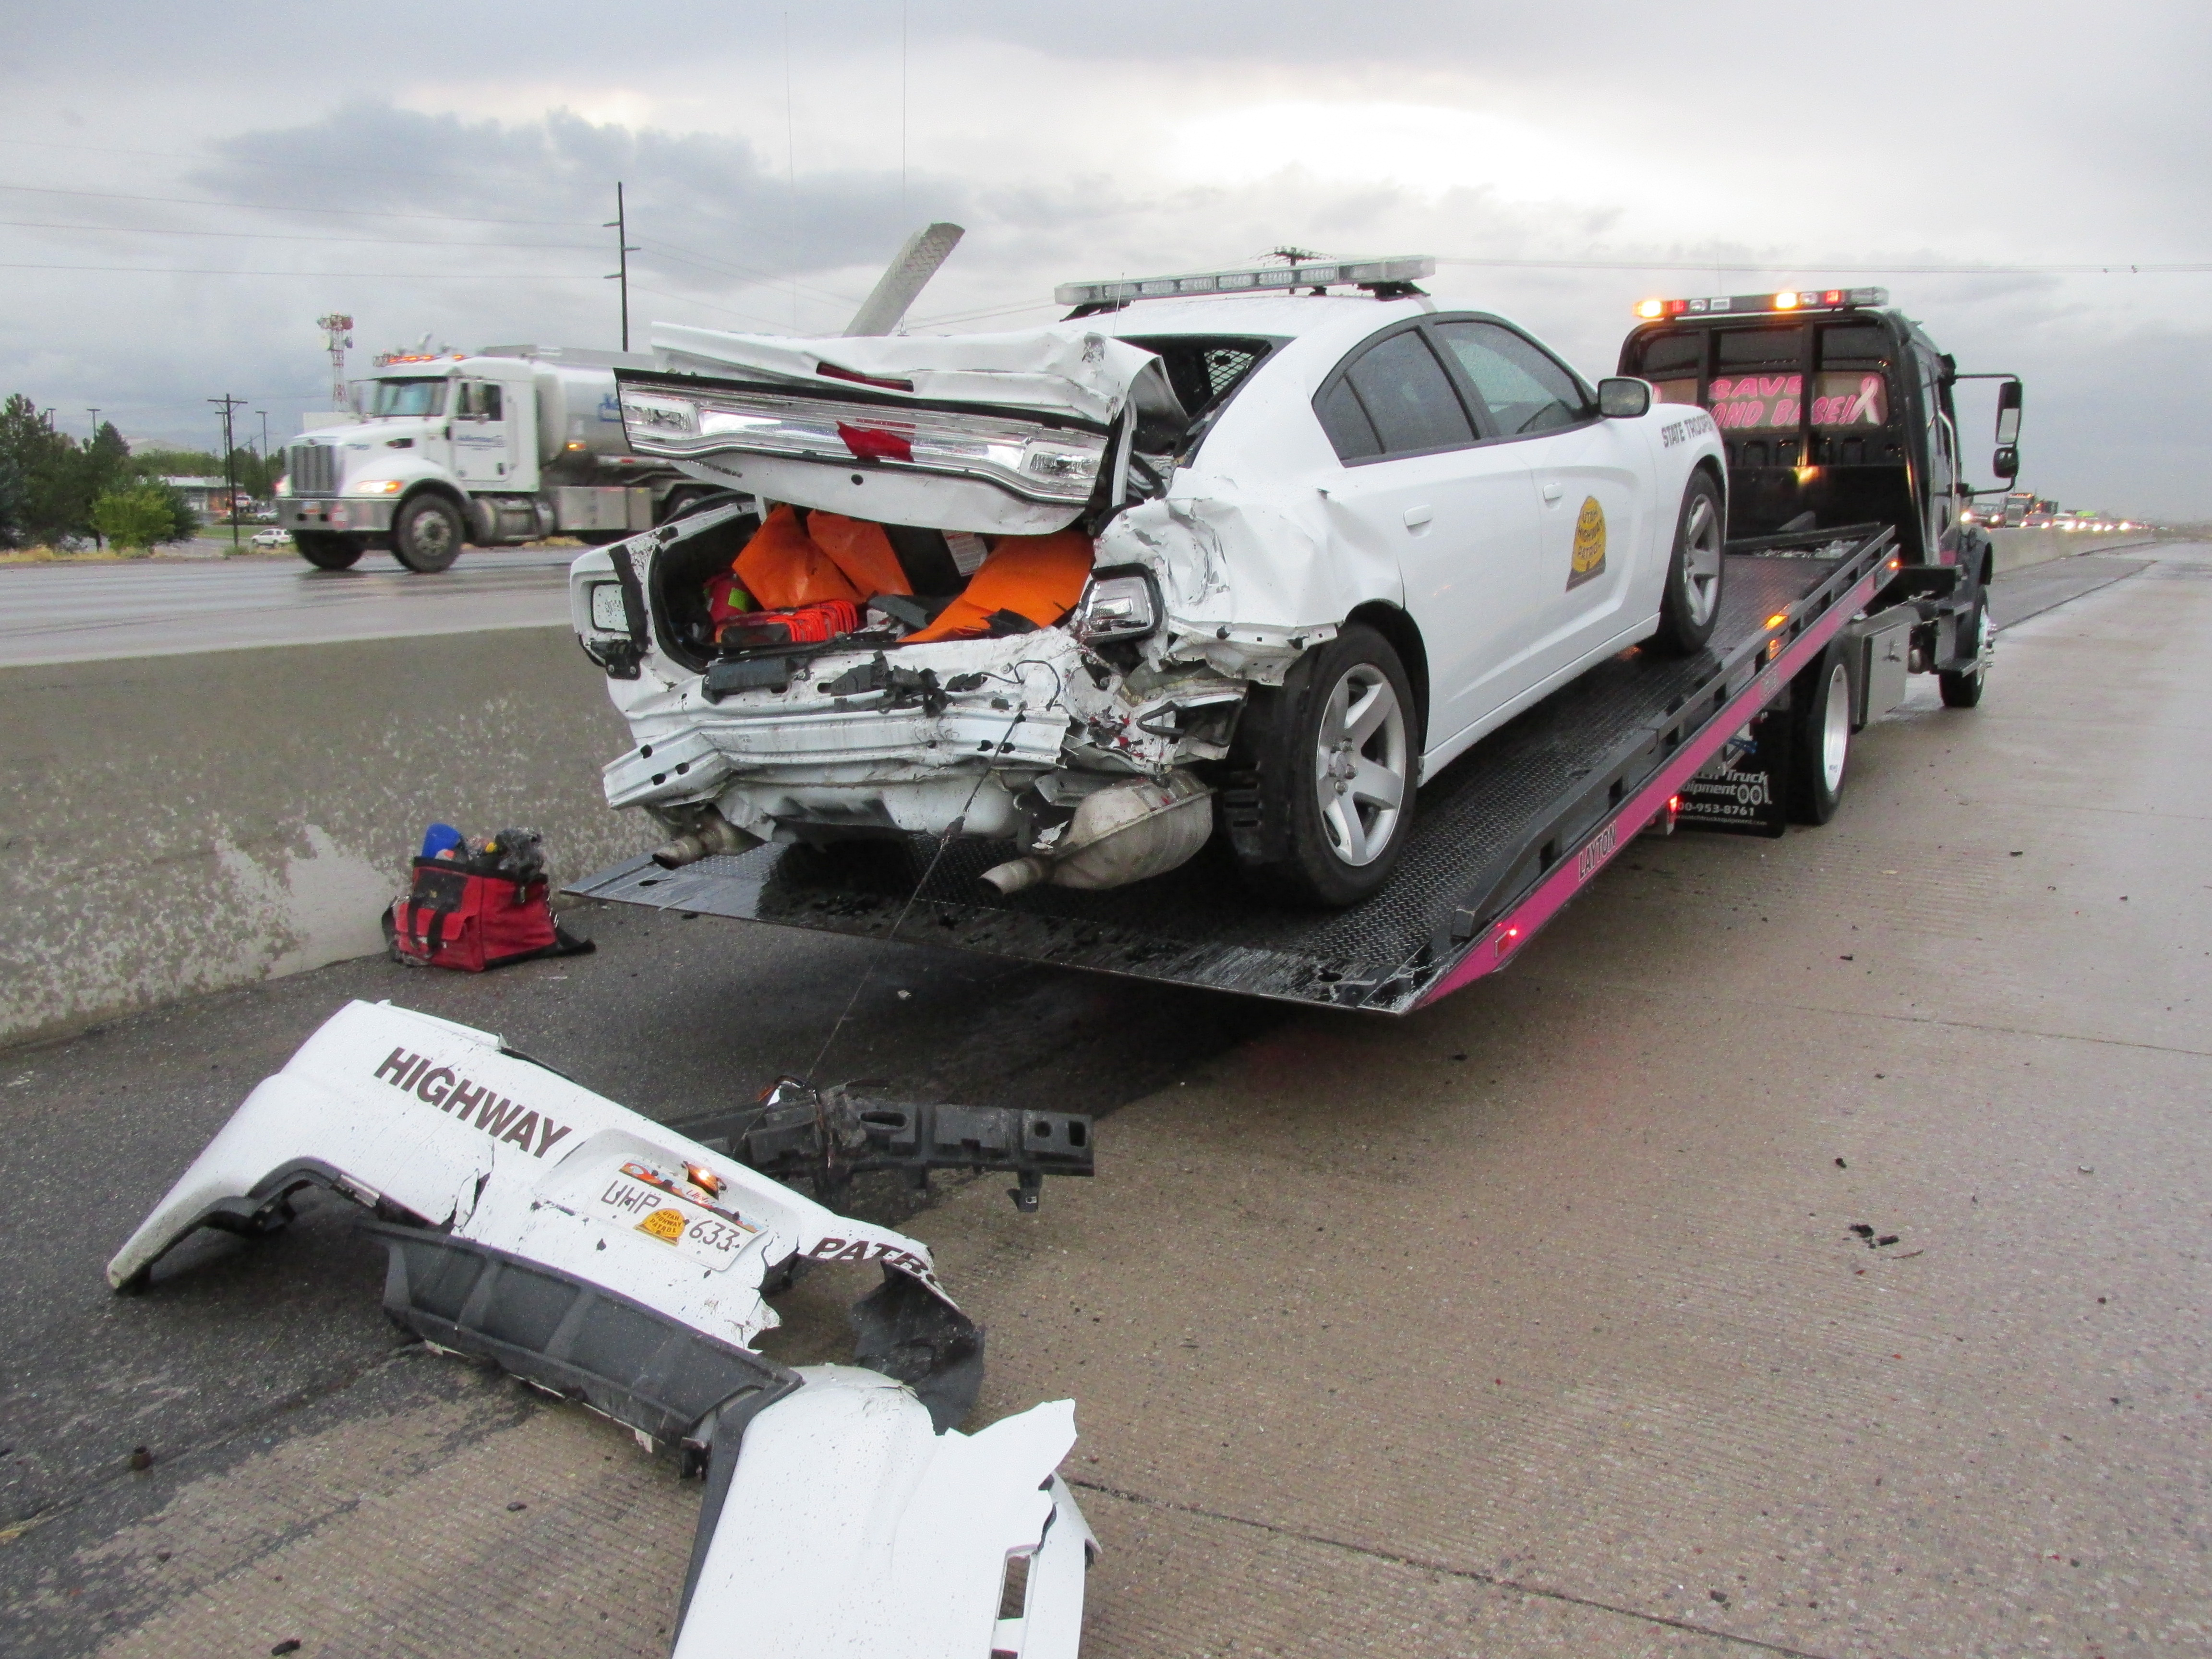 A UHP trooper's vehicle received significant damage when a car crashed into it on the road shoulder.